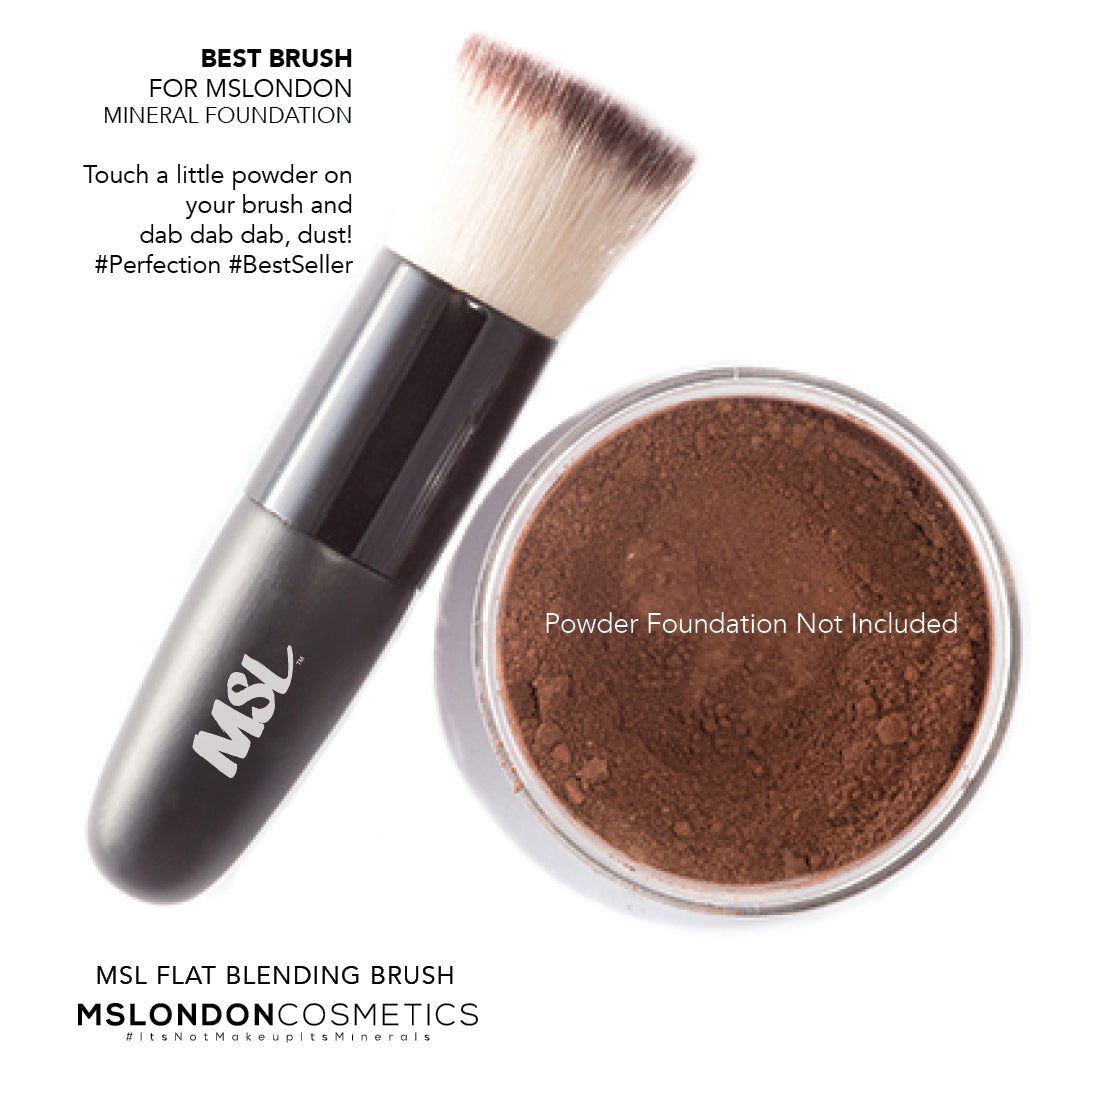 MSL® ICONIC FLAT BLENDING BRUSH